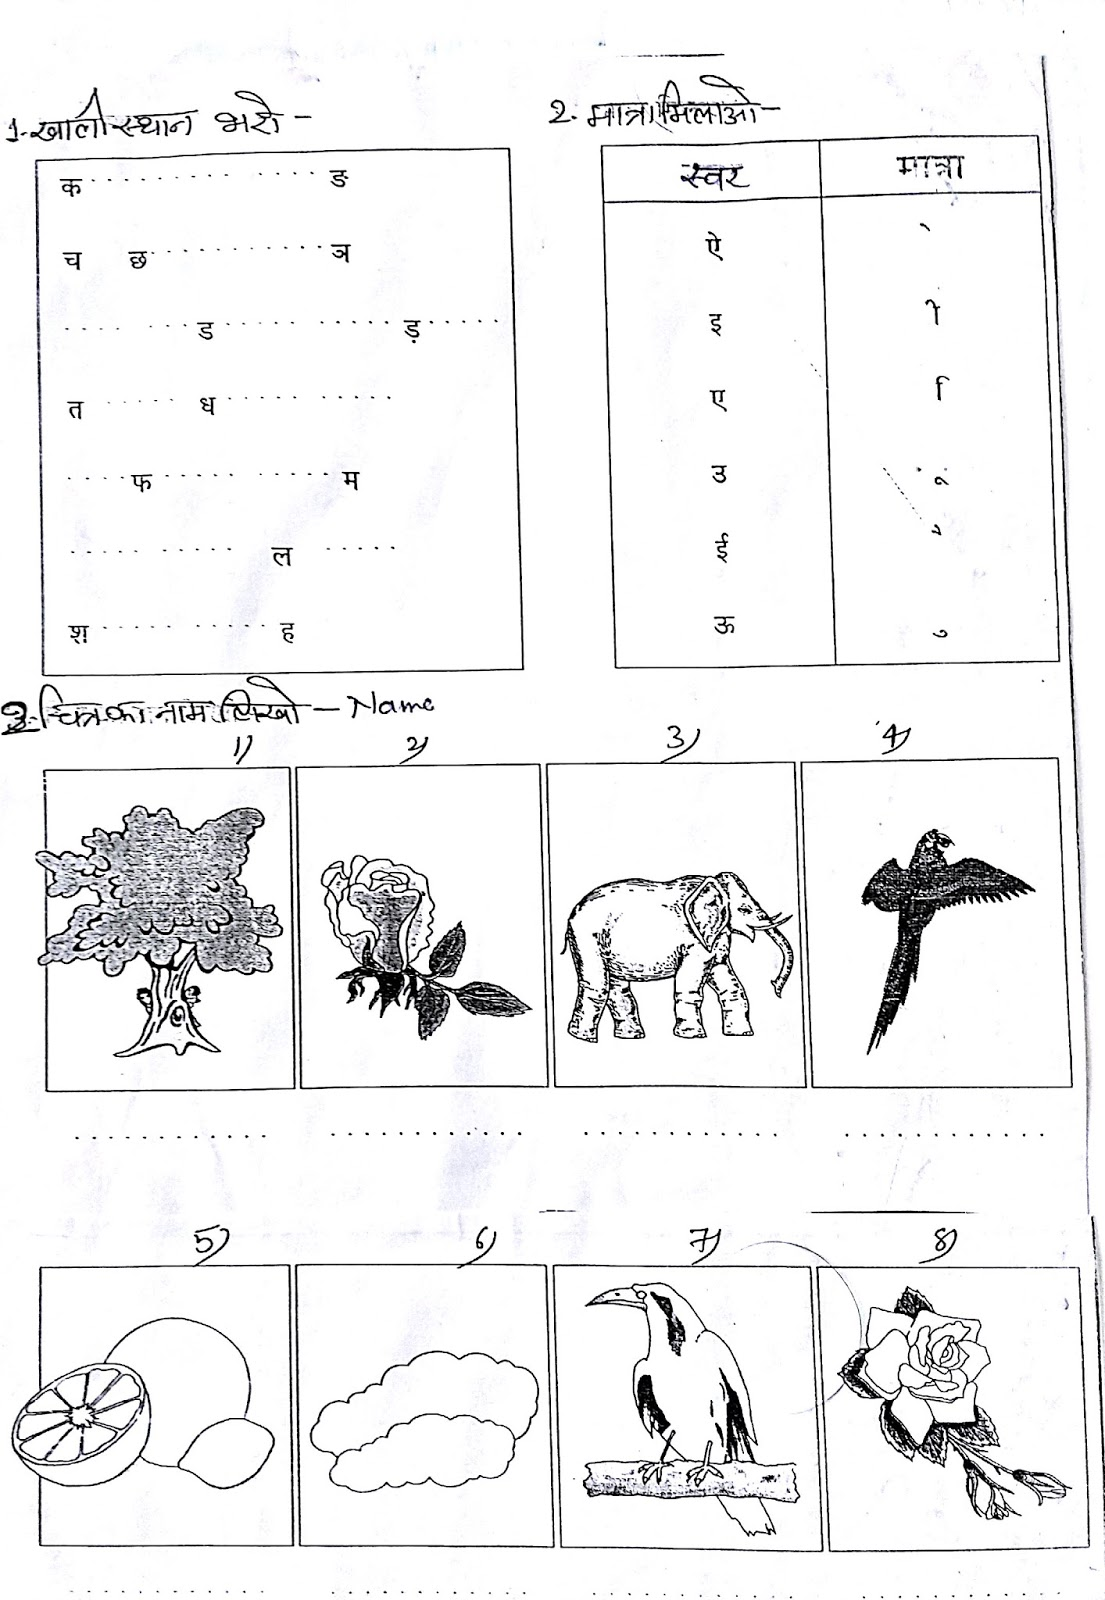 Hindi Grammar Work Sheet Collection For Classes 5 6 7 Amp 8 Alphabets In Hindi